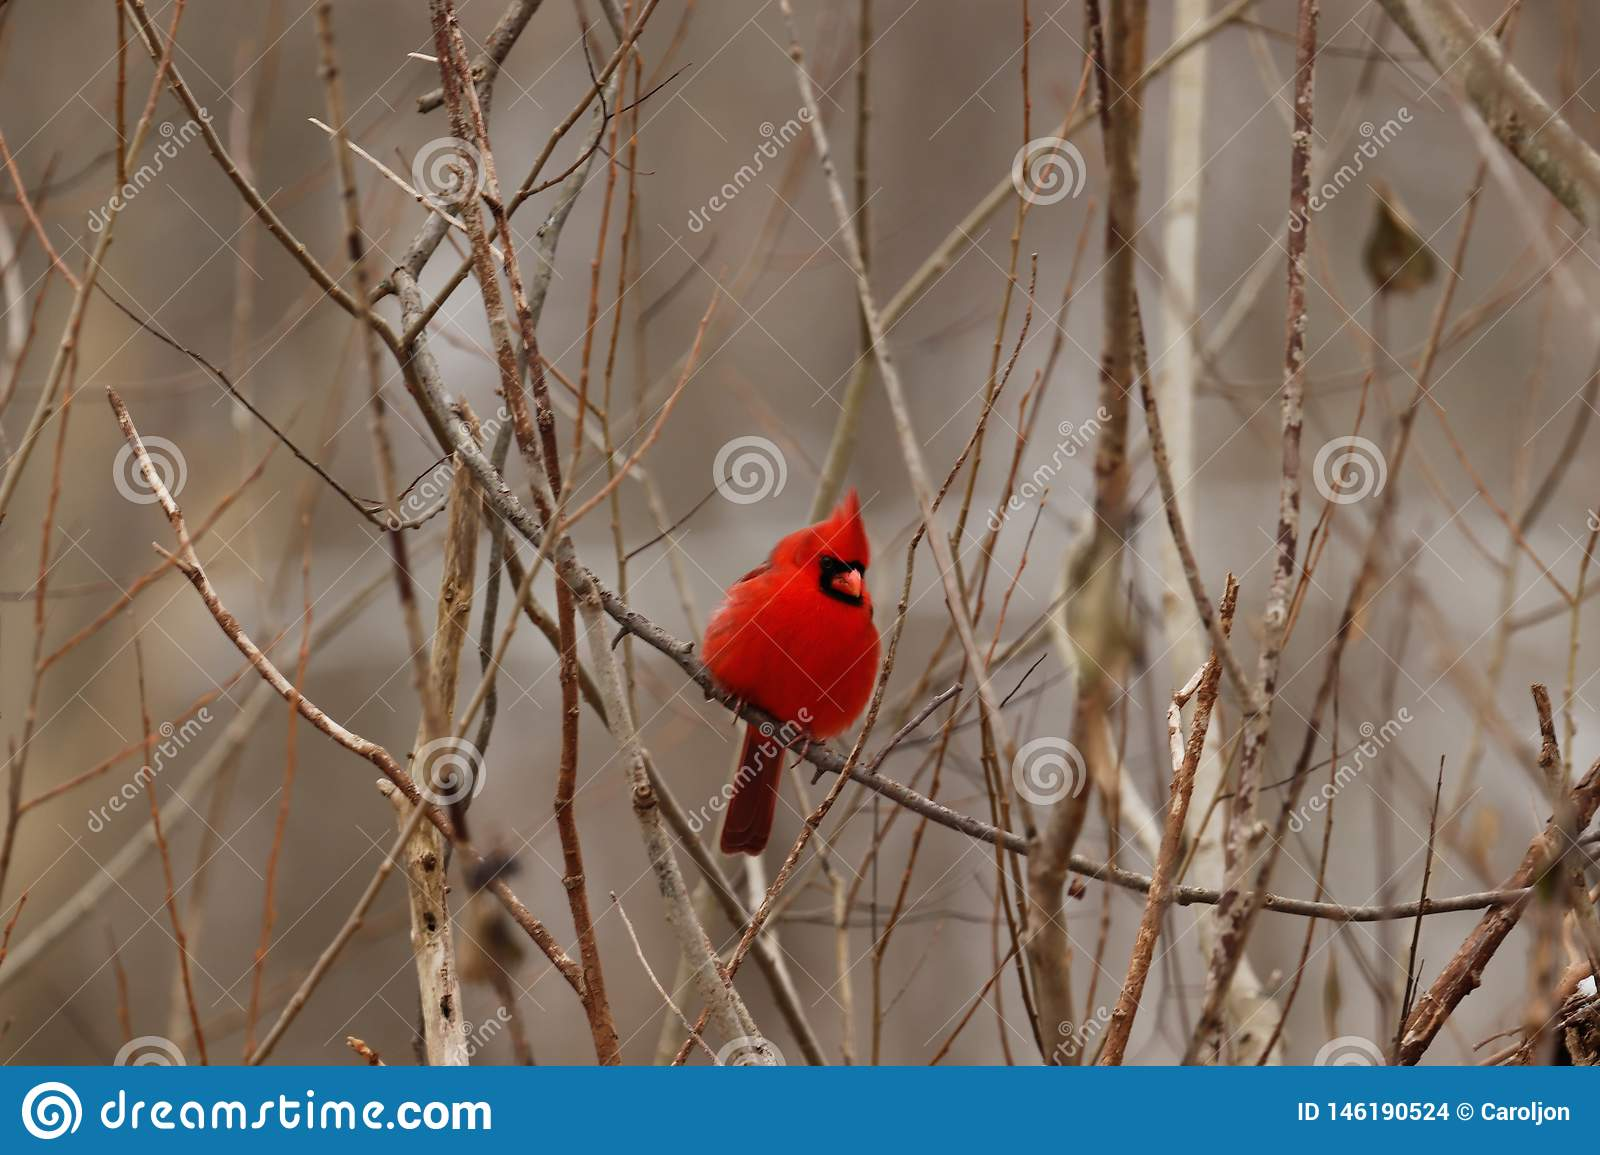 Adult cardinal perched in a tree.